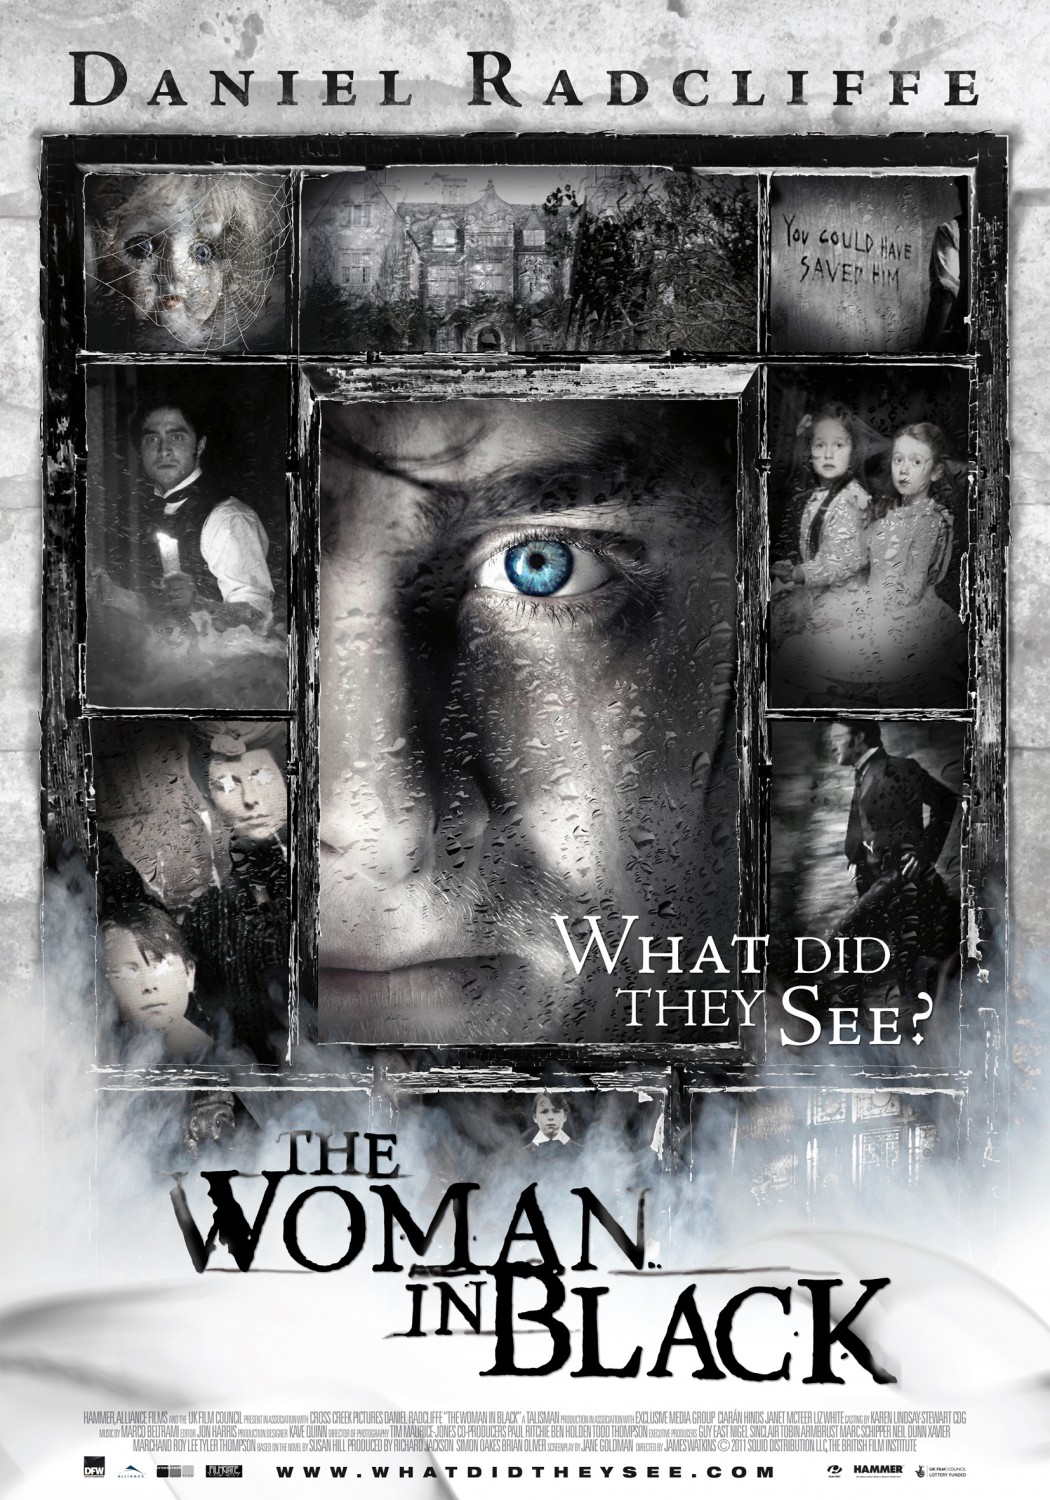 The Woman In Black: The Nerd Appropriate Review